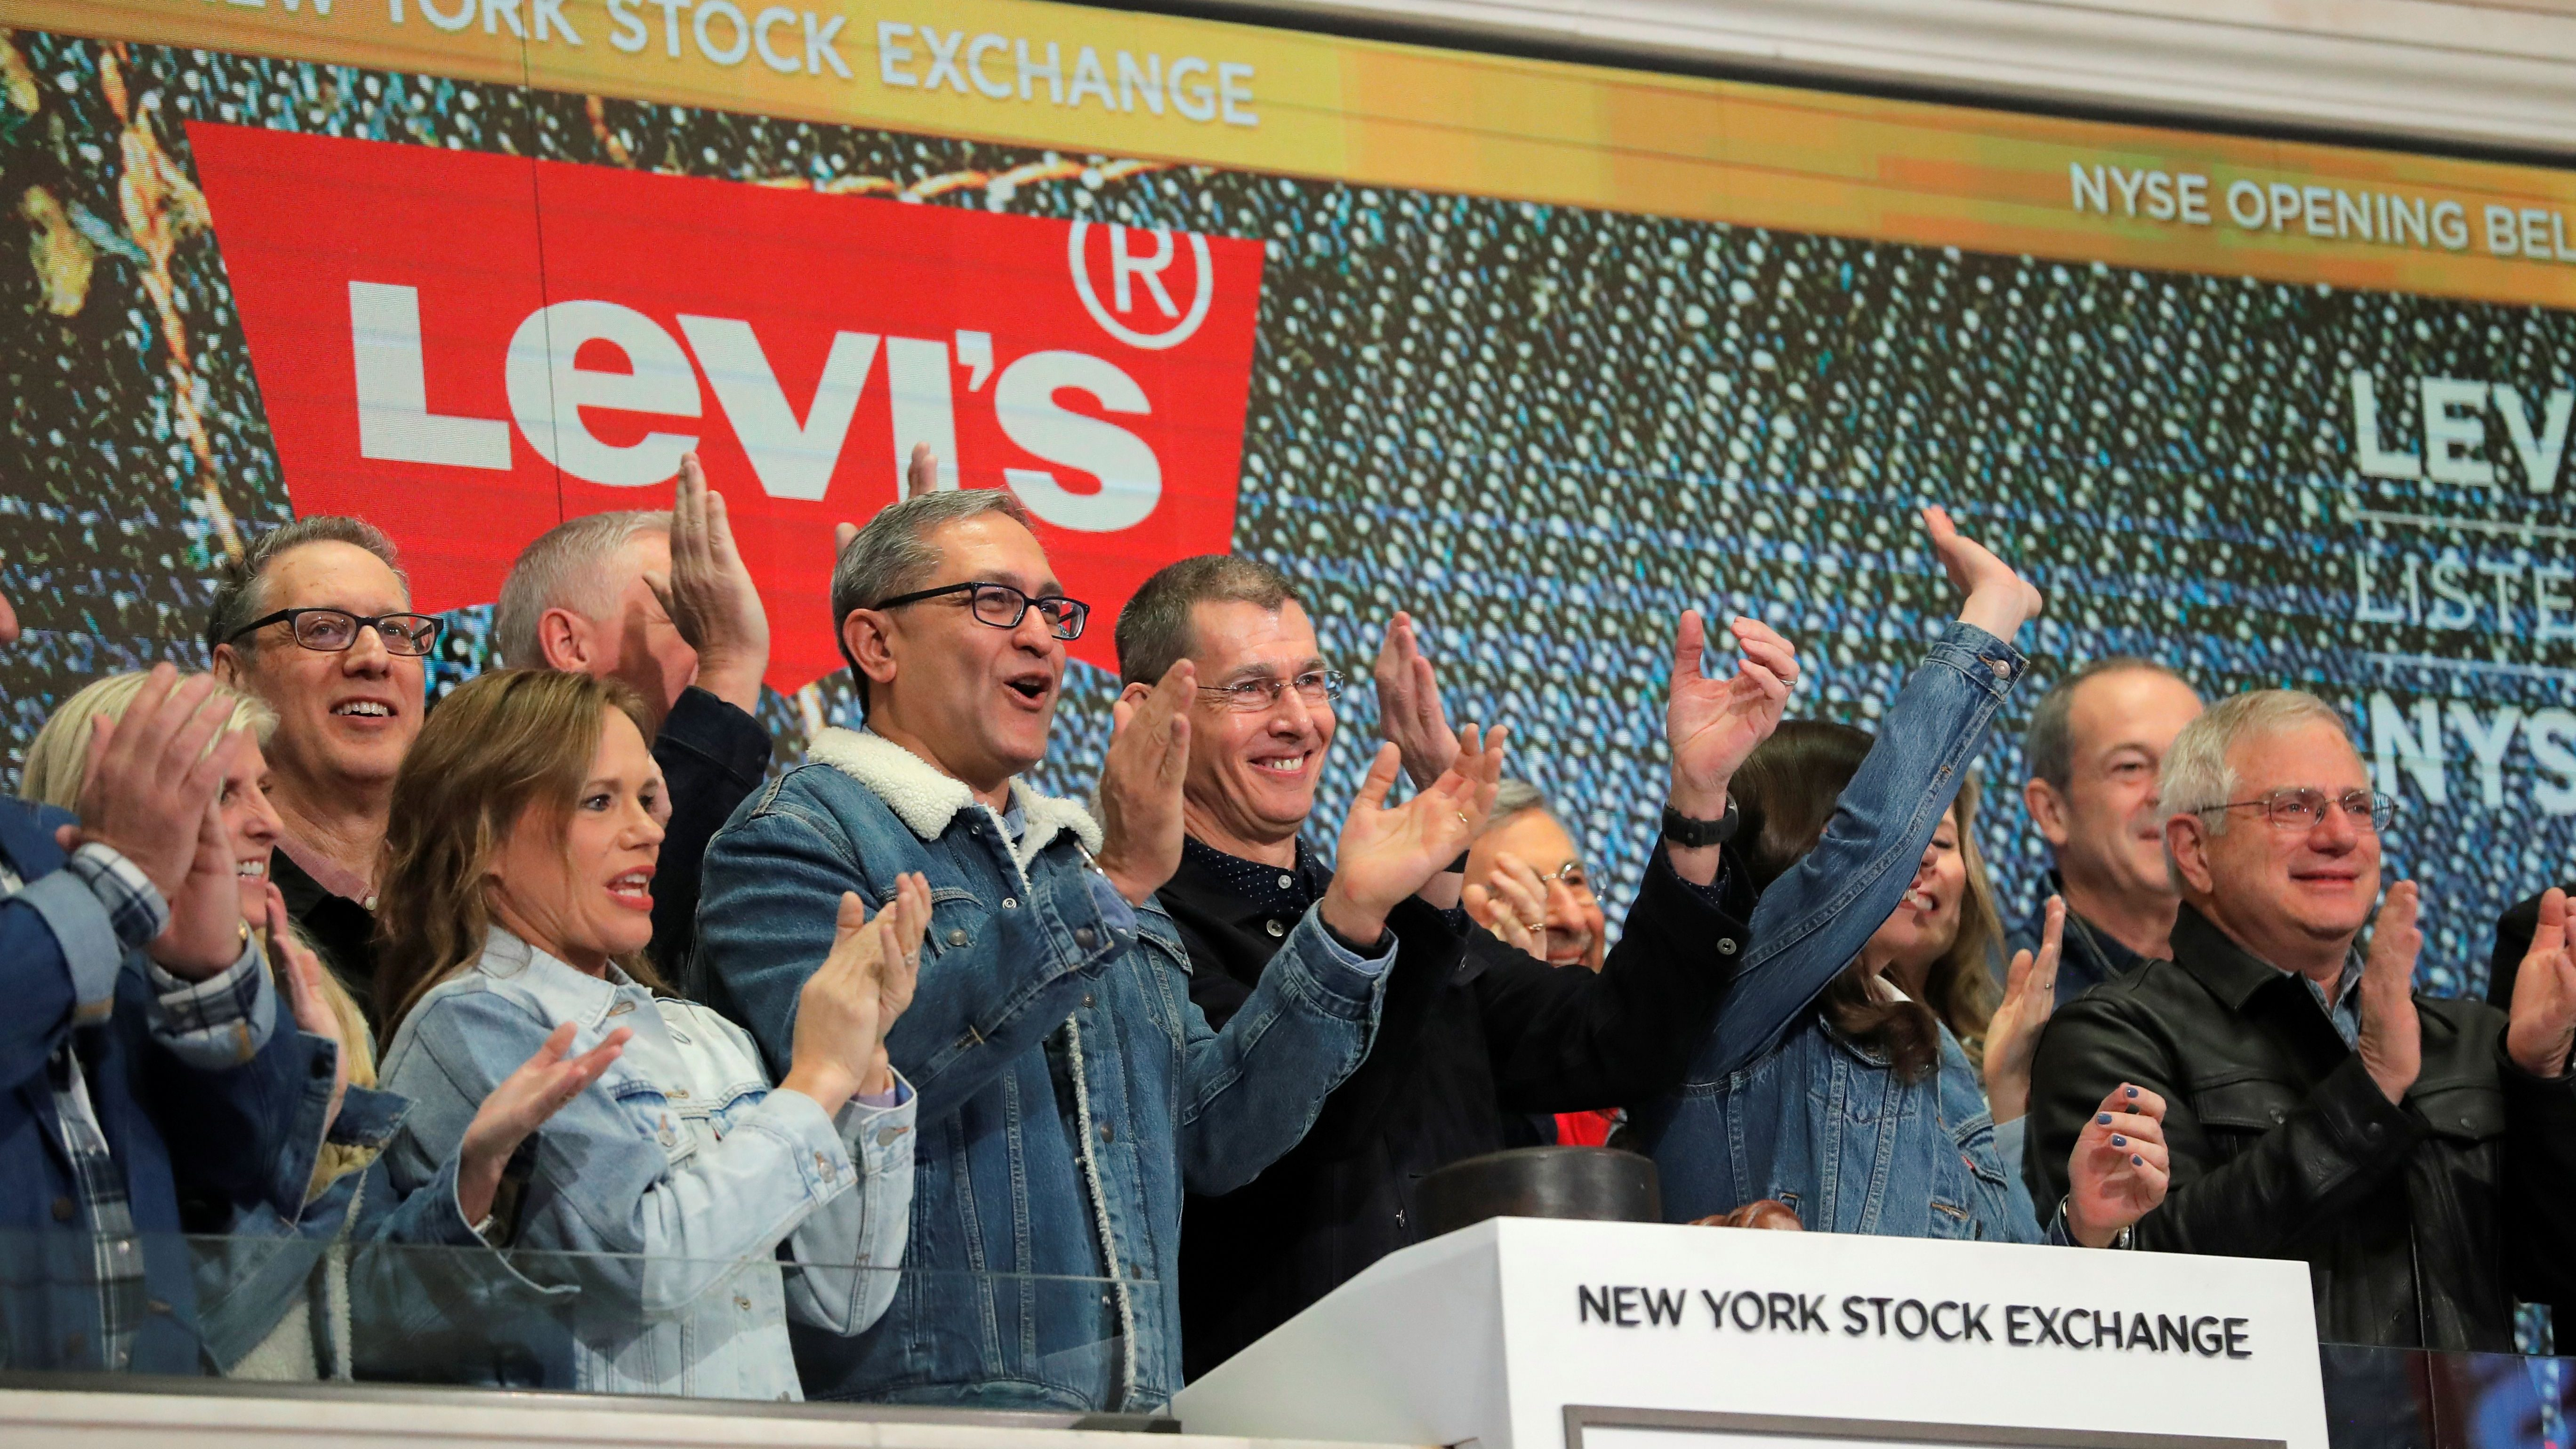 Levi Strauss & Co. CEO Chip Bergh rings the opening bell on New York Stock Exchange (NYSE) during the company's IPO in New York, U.S., March 21, 2019. REUTERS/Lucas Jackson - RC153AFDCFC0